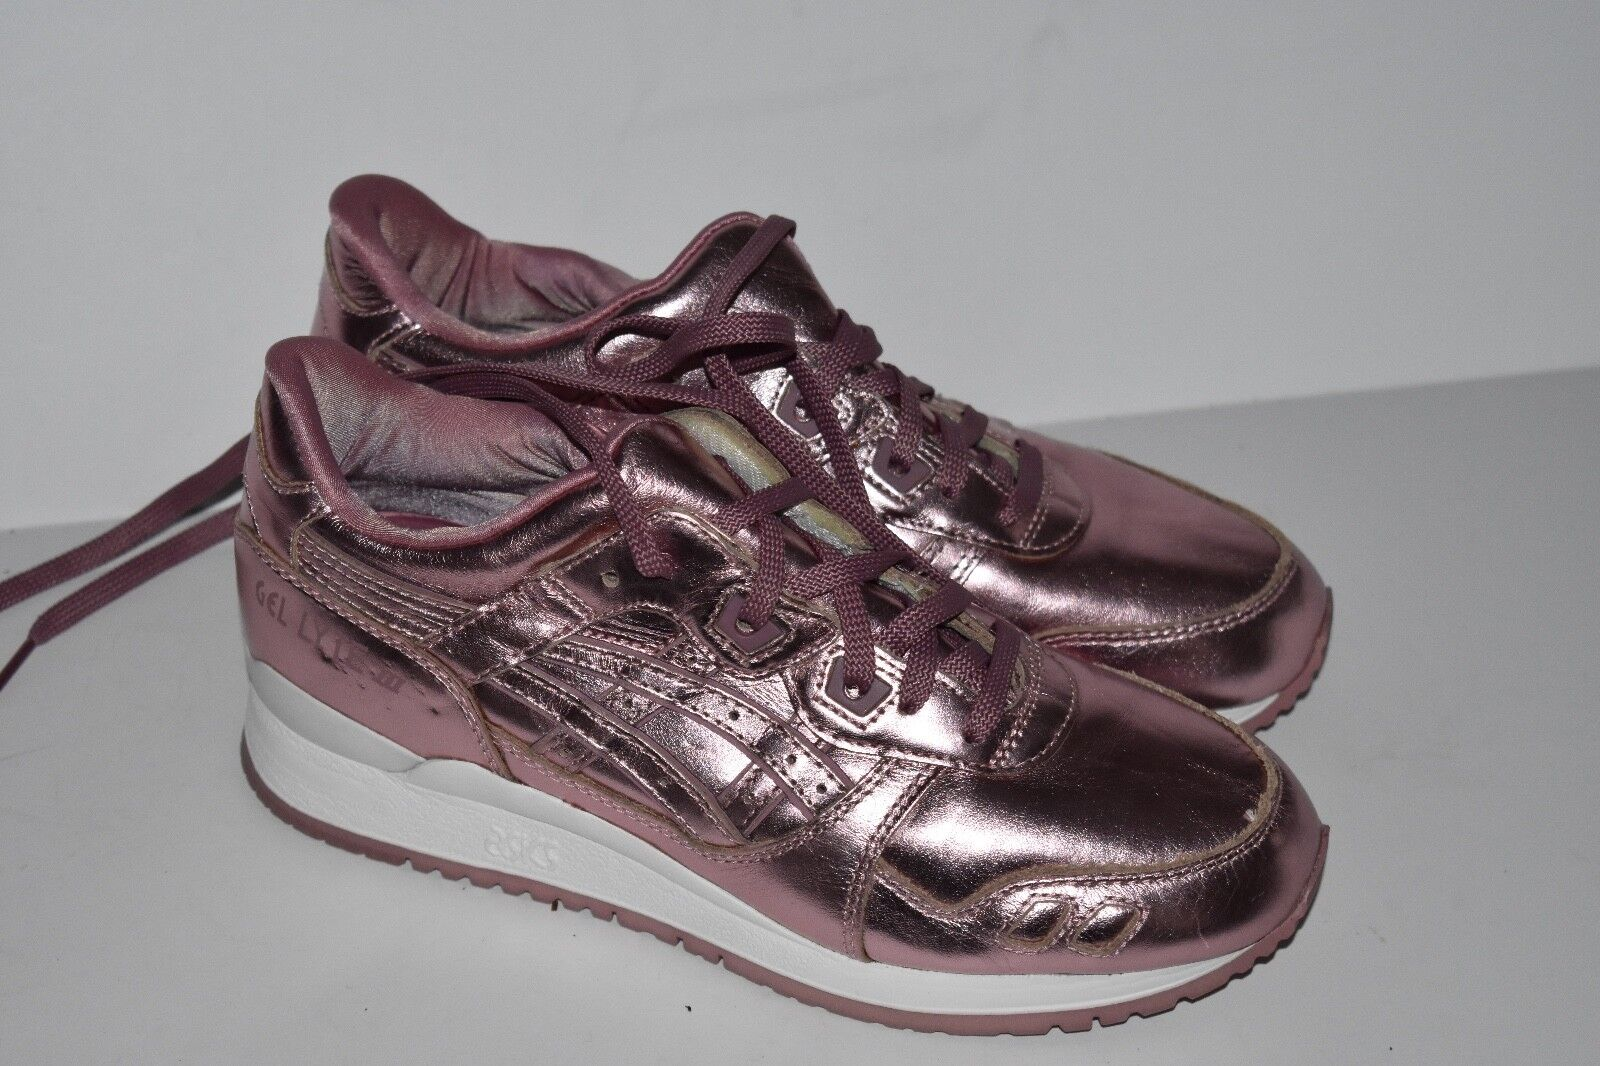 Asics Gel Lyte III Shoes Metallic Rose H6E5K RARE Women Comfortable The most popular shoes for men and women